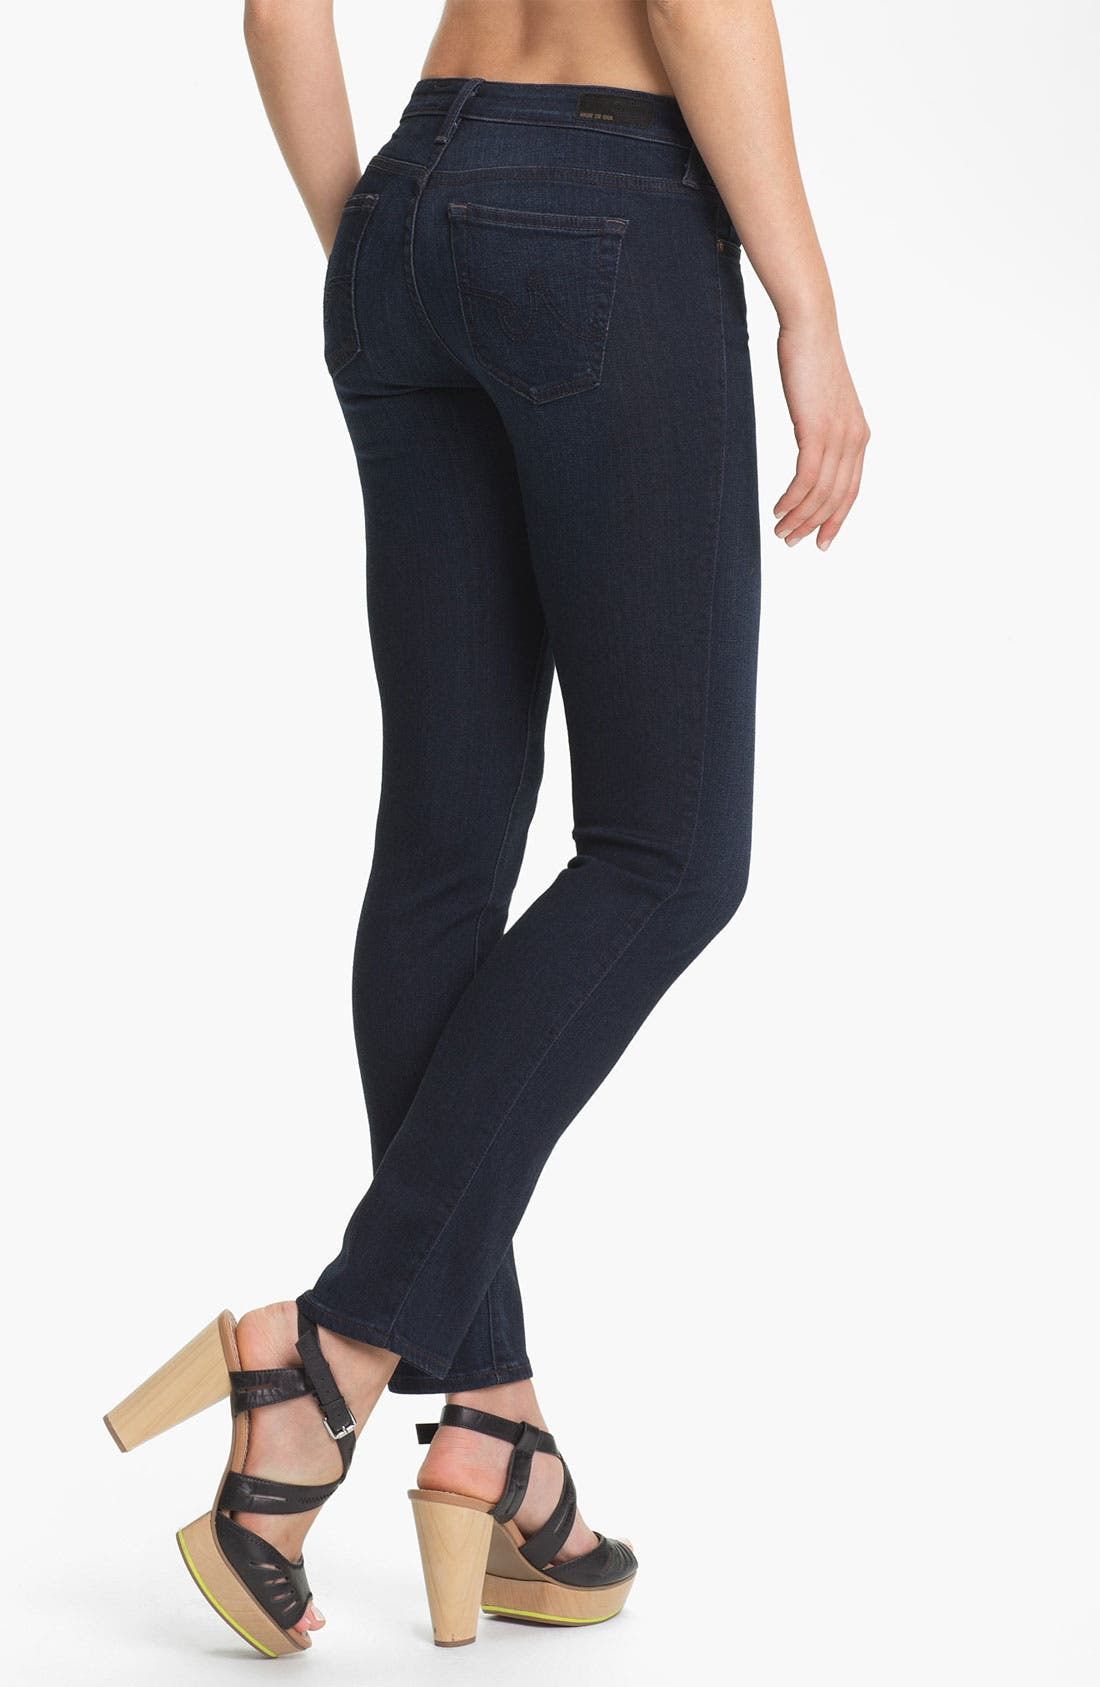 Alternate Image 2  - AG Jeans 'Stilt' Cigarette Leg Stretch Jeans (Jetsetter)